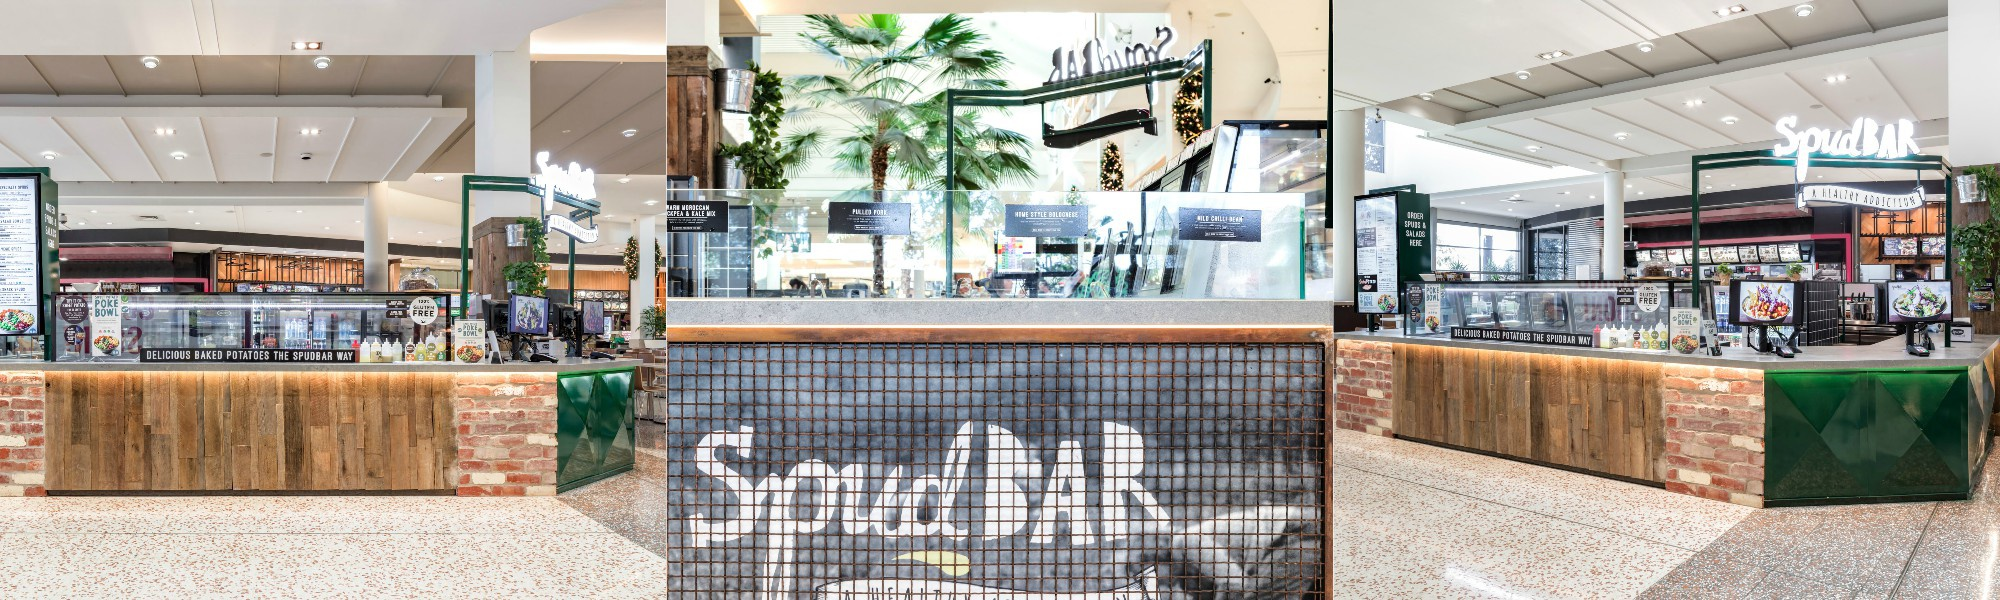 Excellent SpudBar Franchise For Sale in Busy Westfield Centre! (Our Ref: V1496)